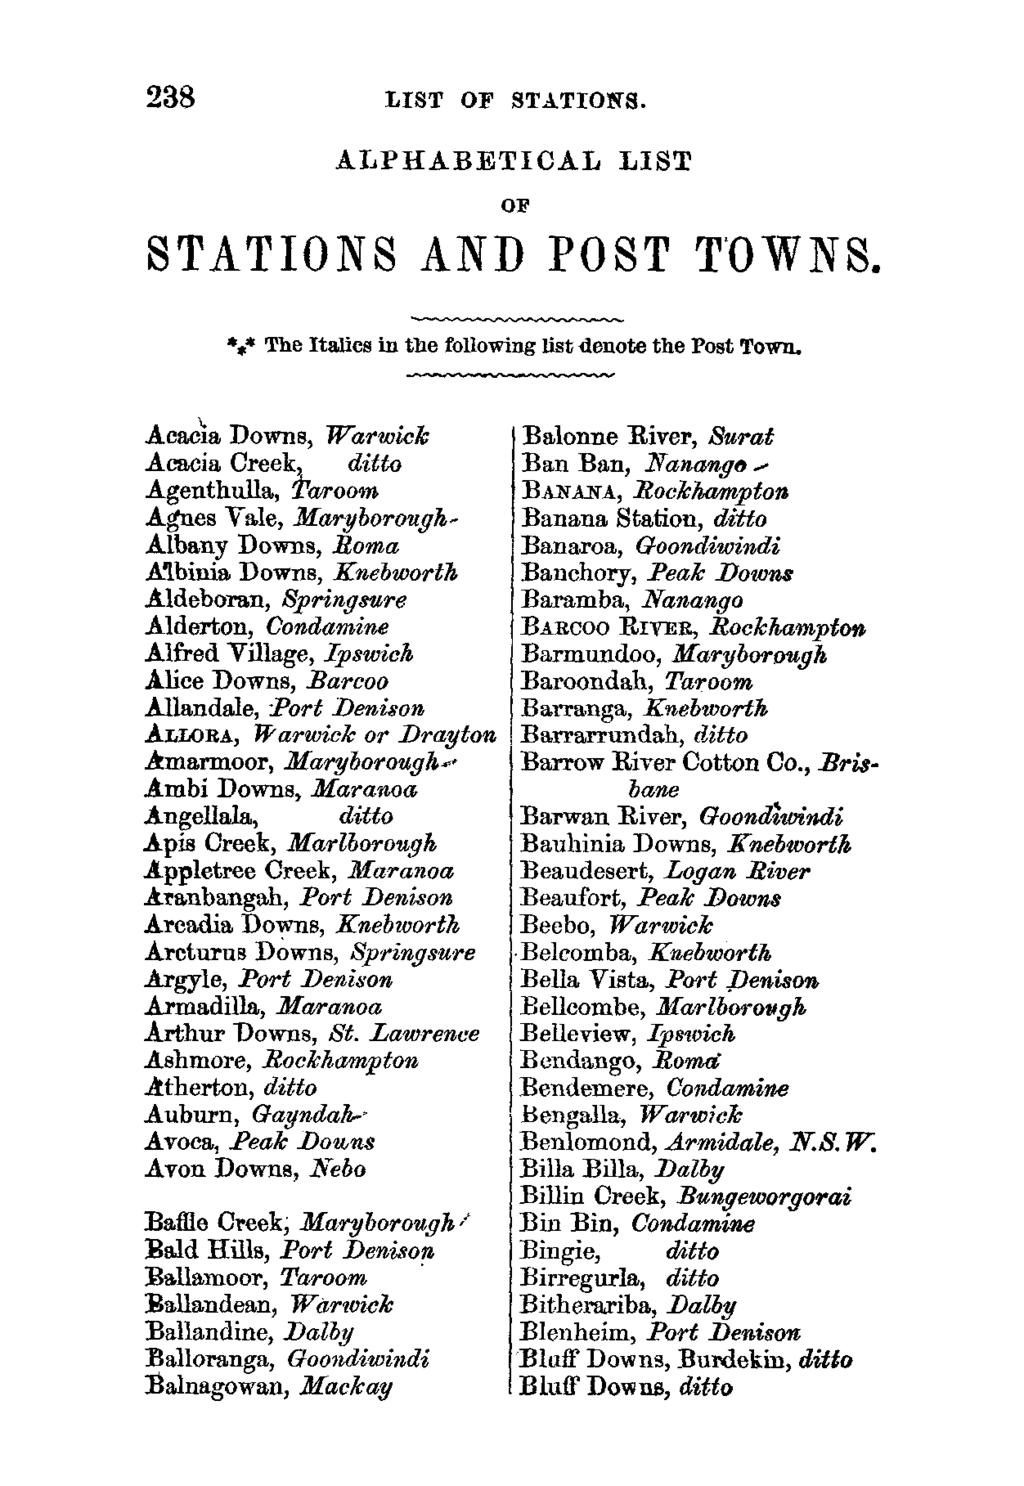 238 LIST OF STATIONS. ALPHABETICAL LIST OF STATIONS AND POST TOWNS. *** The Italics in the following list denote the Post Town.